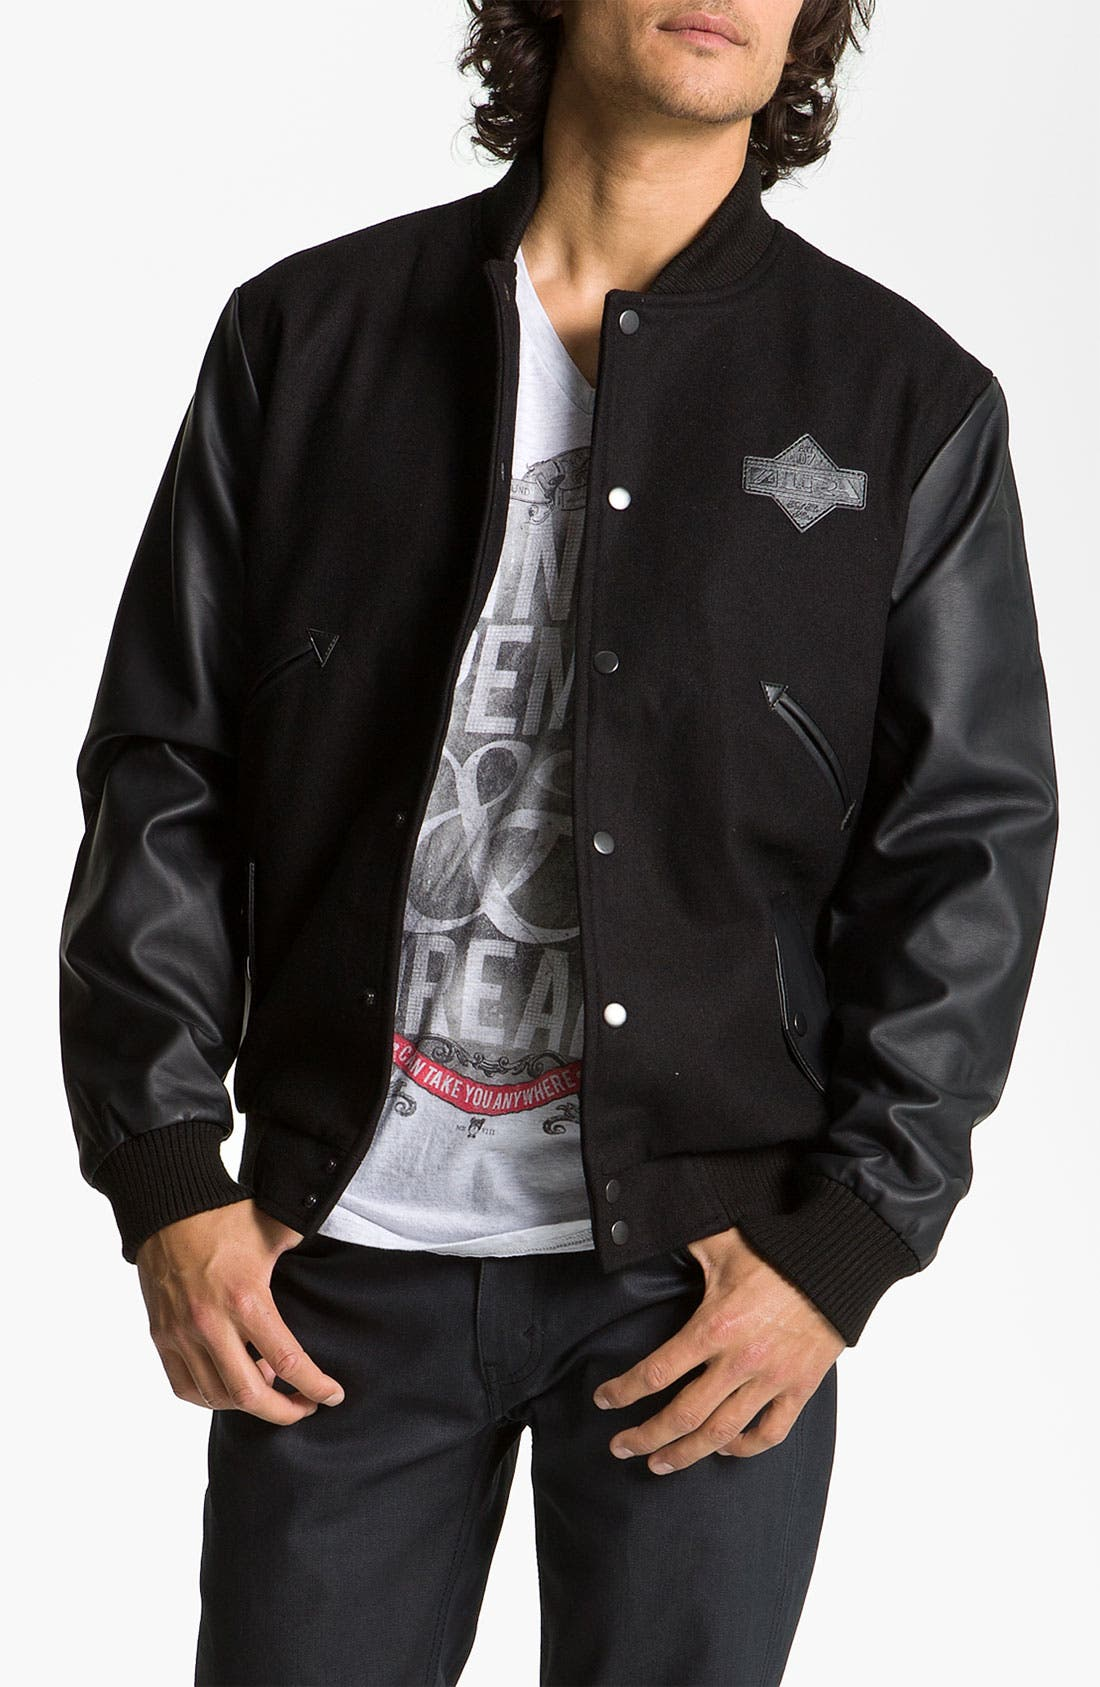 Main Image - Lira Clothing Wool Blend Varsity Jacket